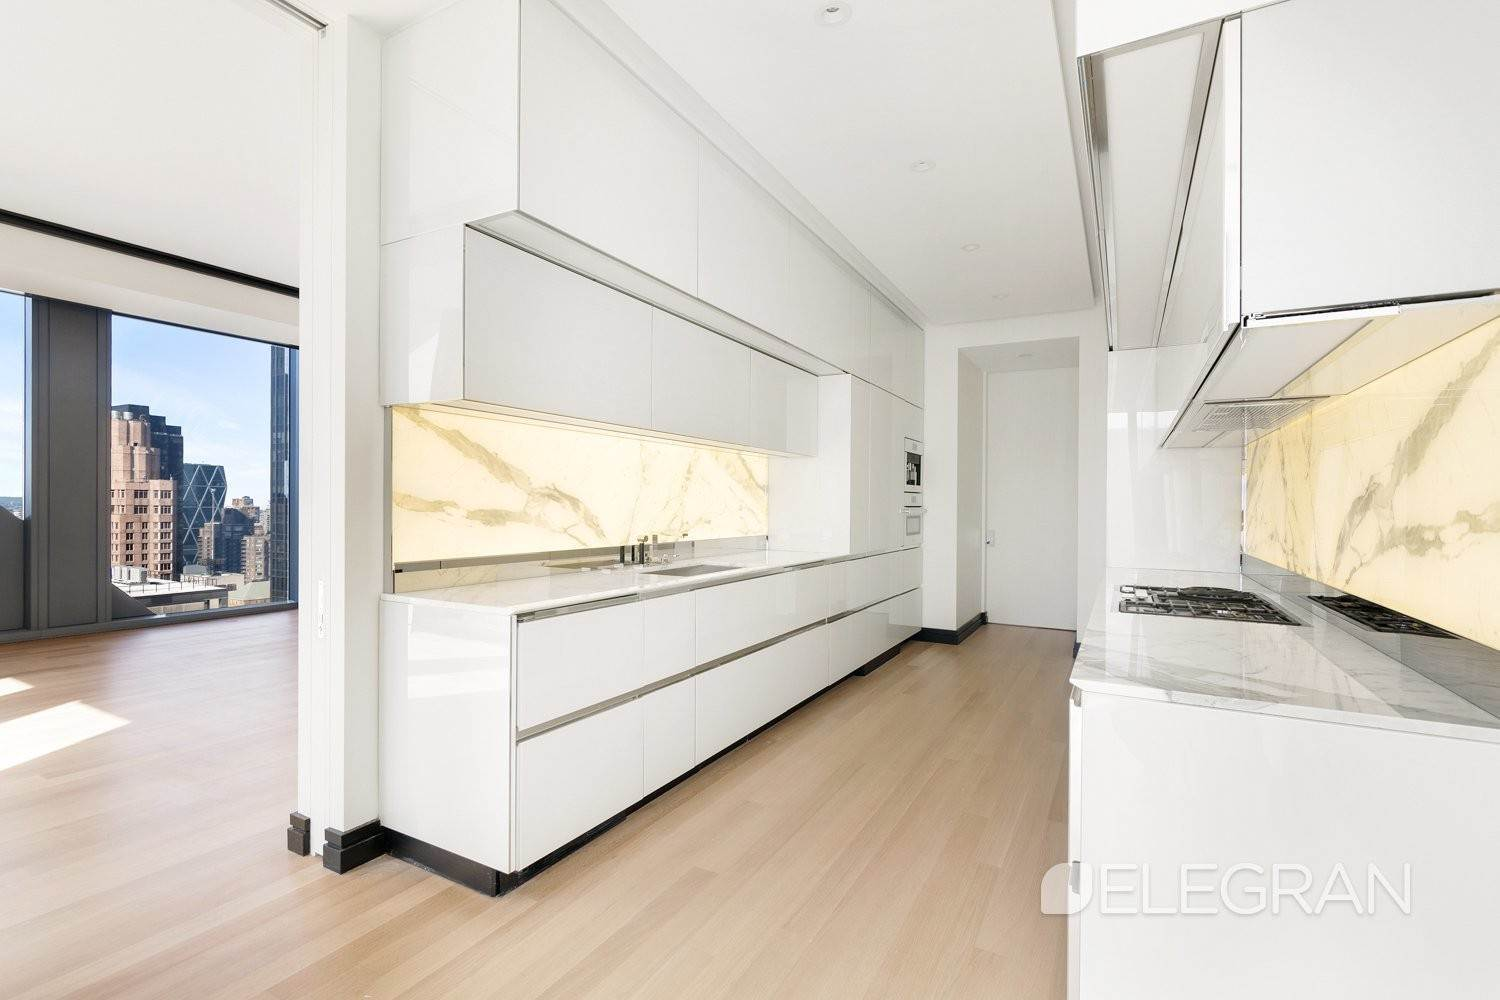 Condominium for Rent at 53W53 53 West 53rd Street, 51-B New York, New York,10019 United States